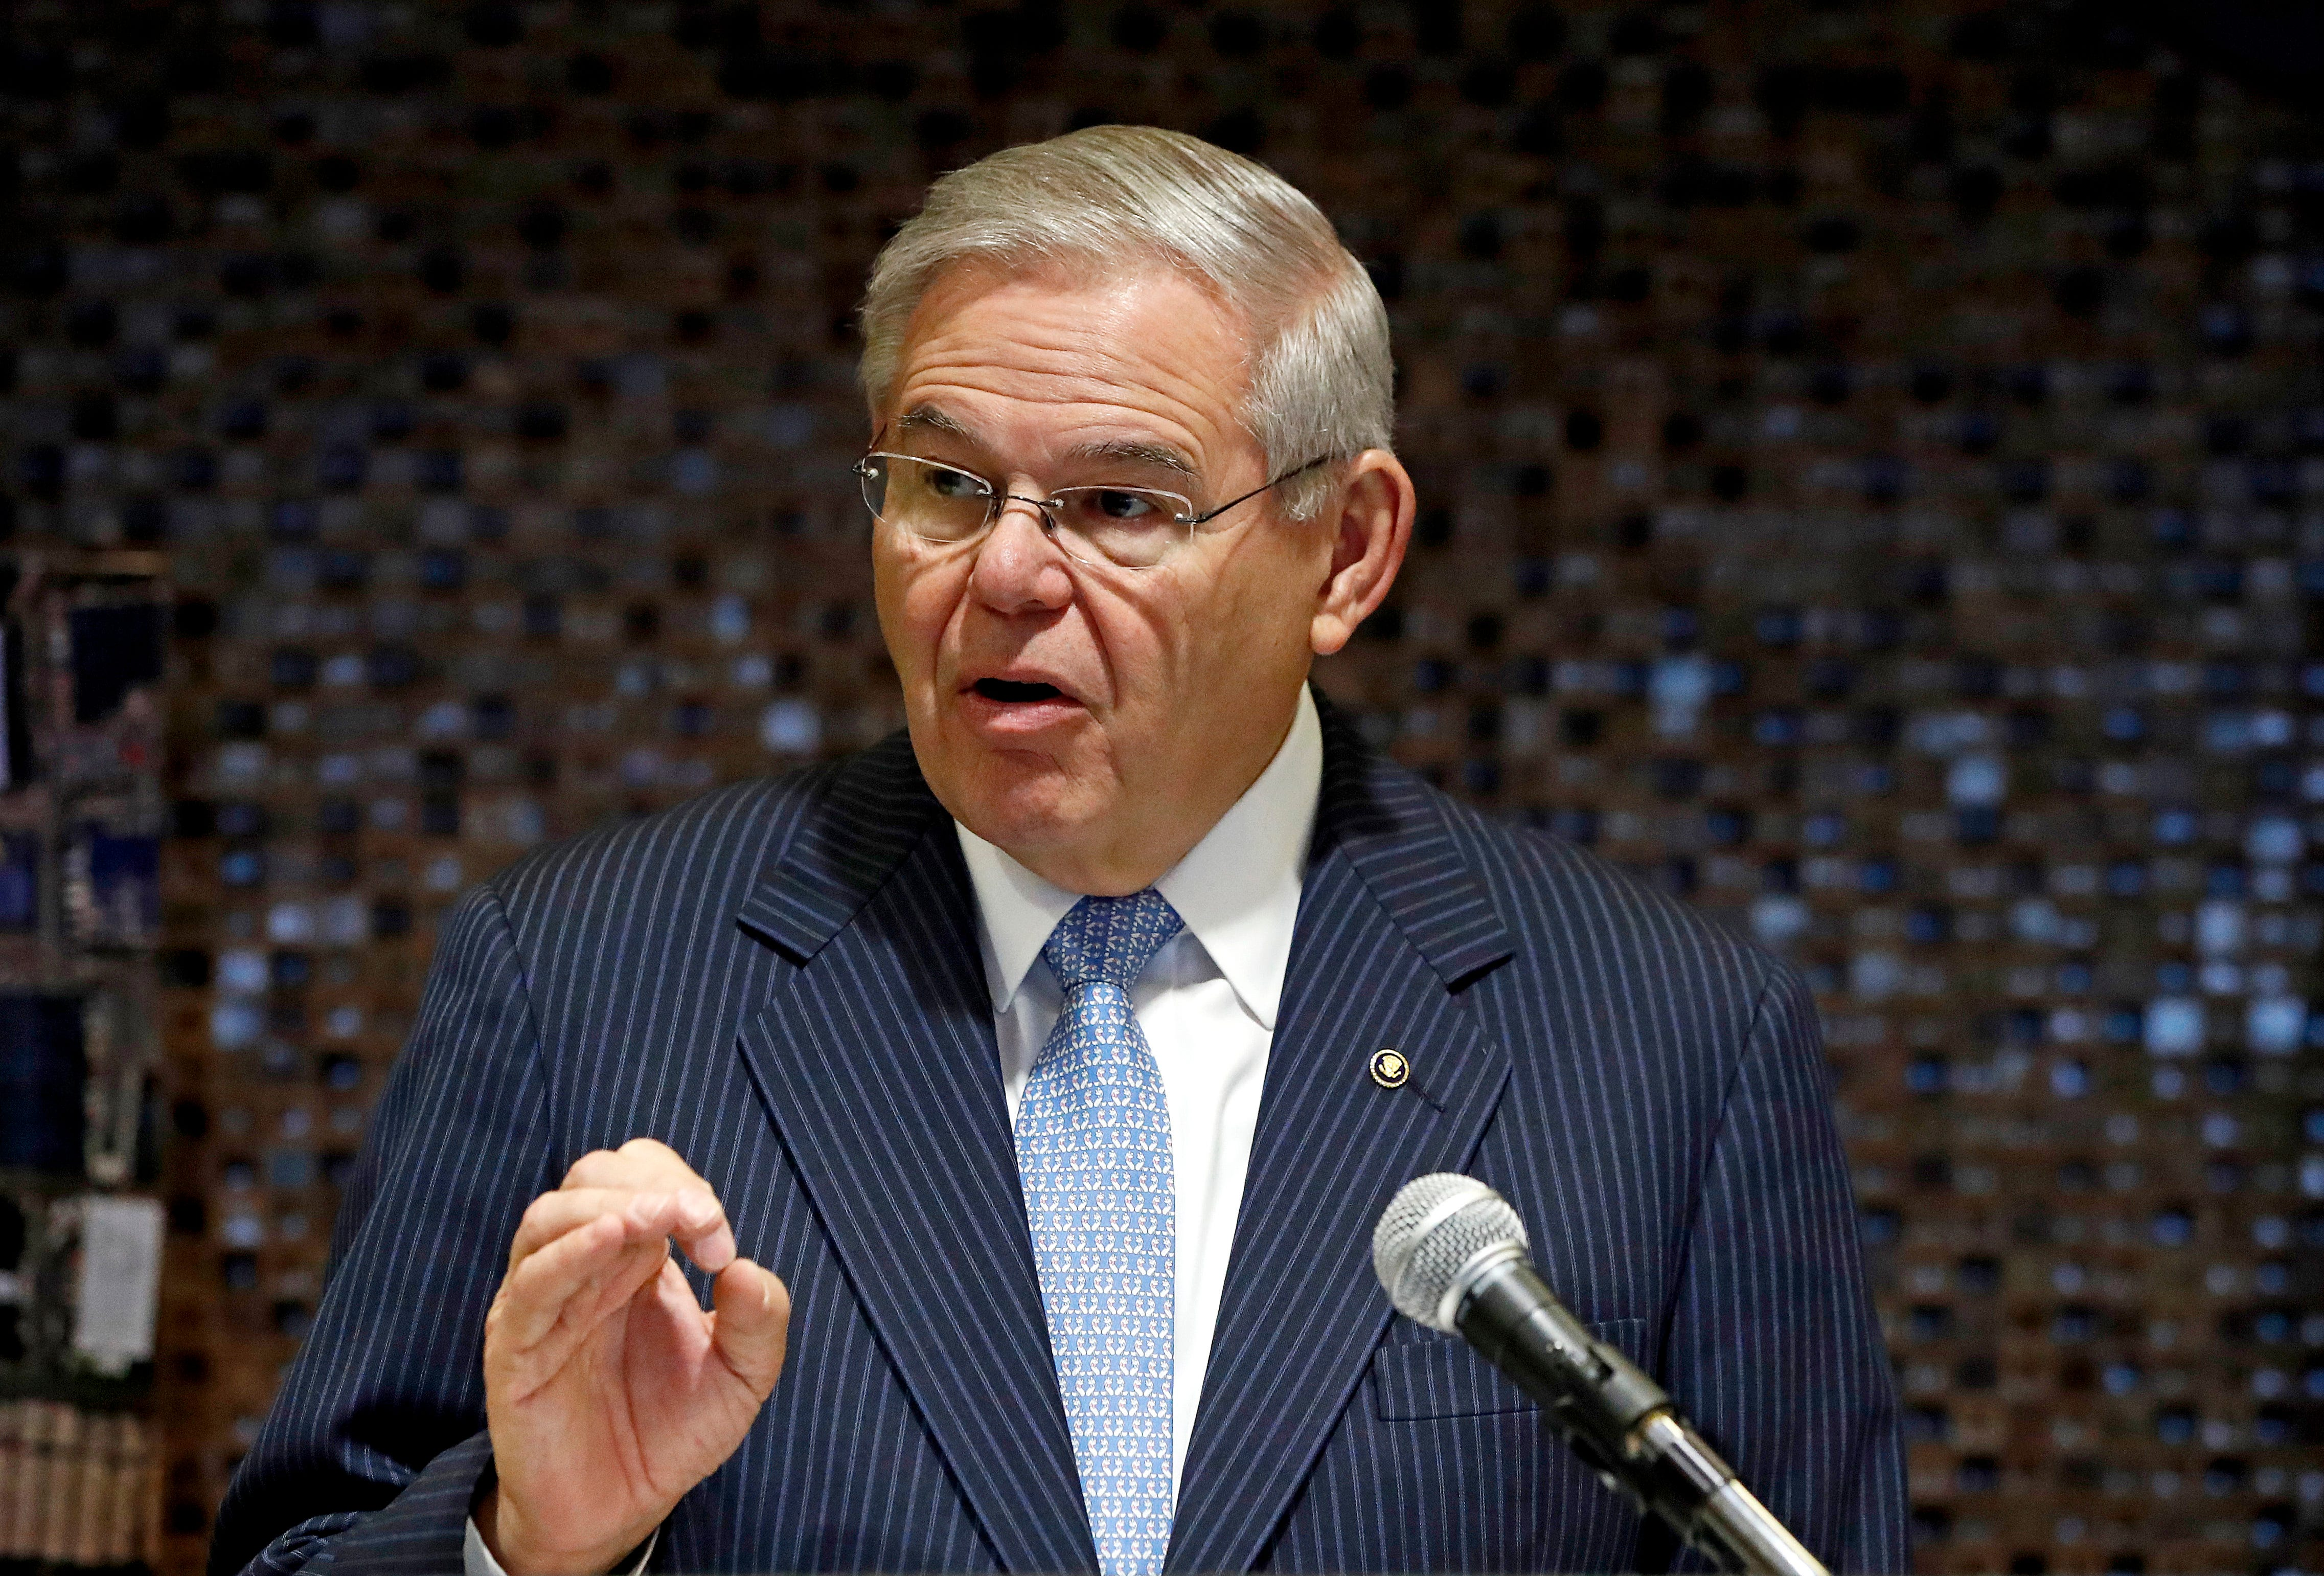 More coverage of Sen. Menendez's corruption trial